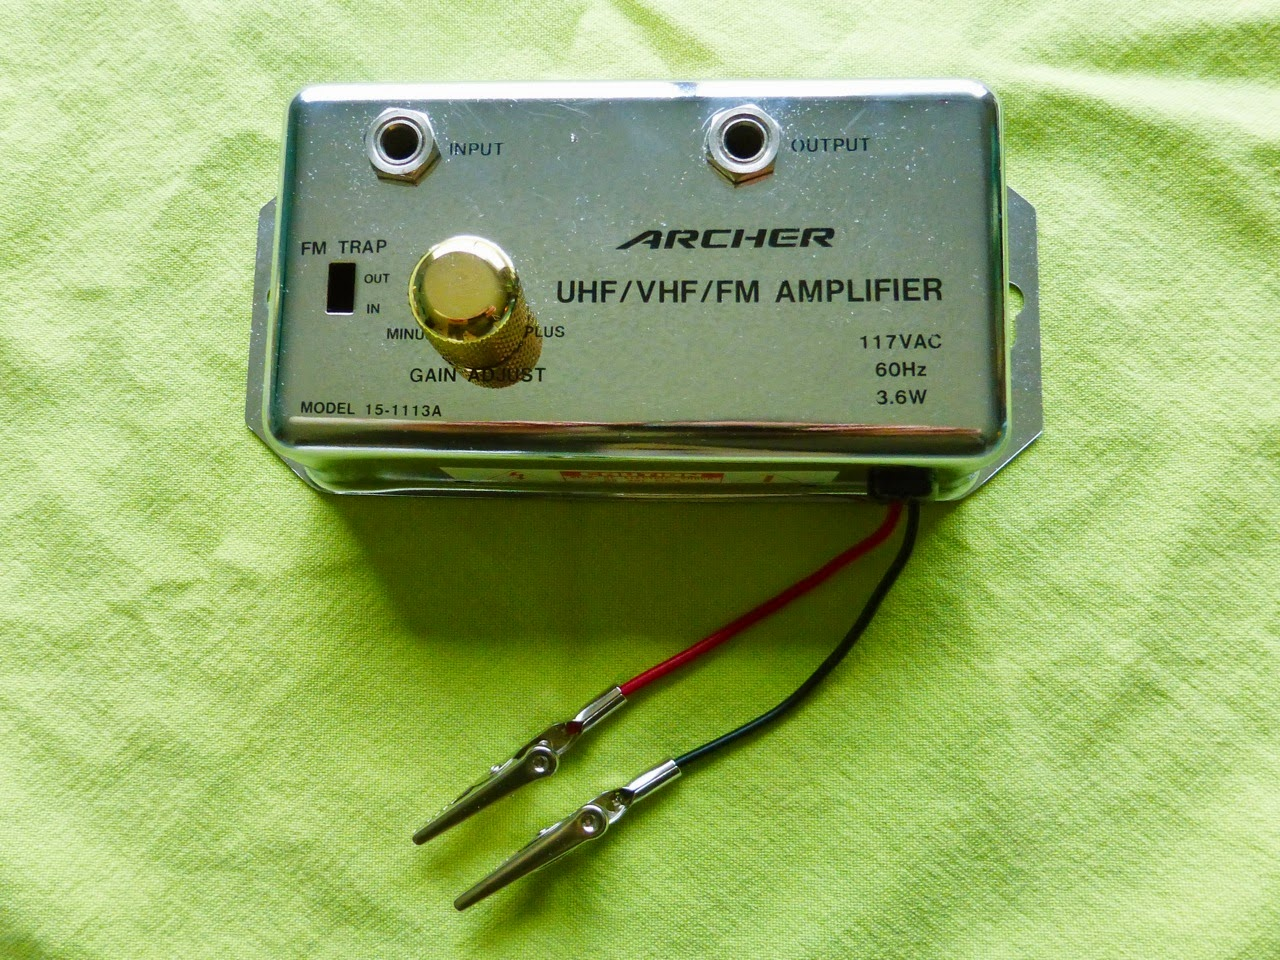 custom cap, capacitor test box, vintage, Archer antenna booster, case, clips, Tele. Telecaster knob.